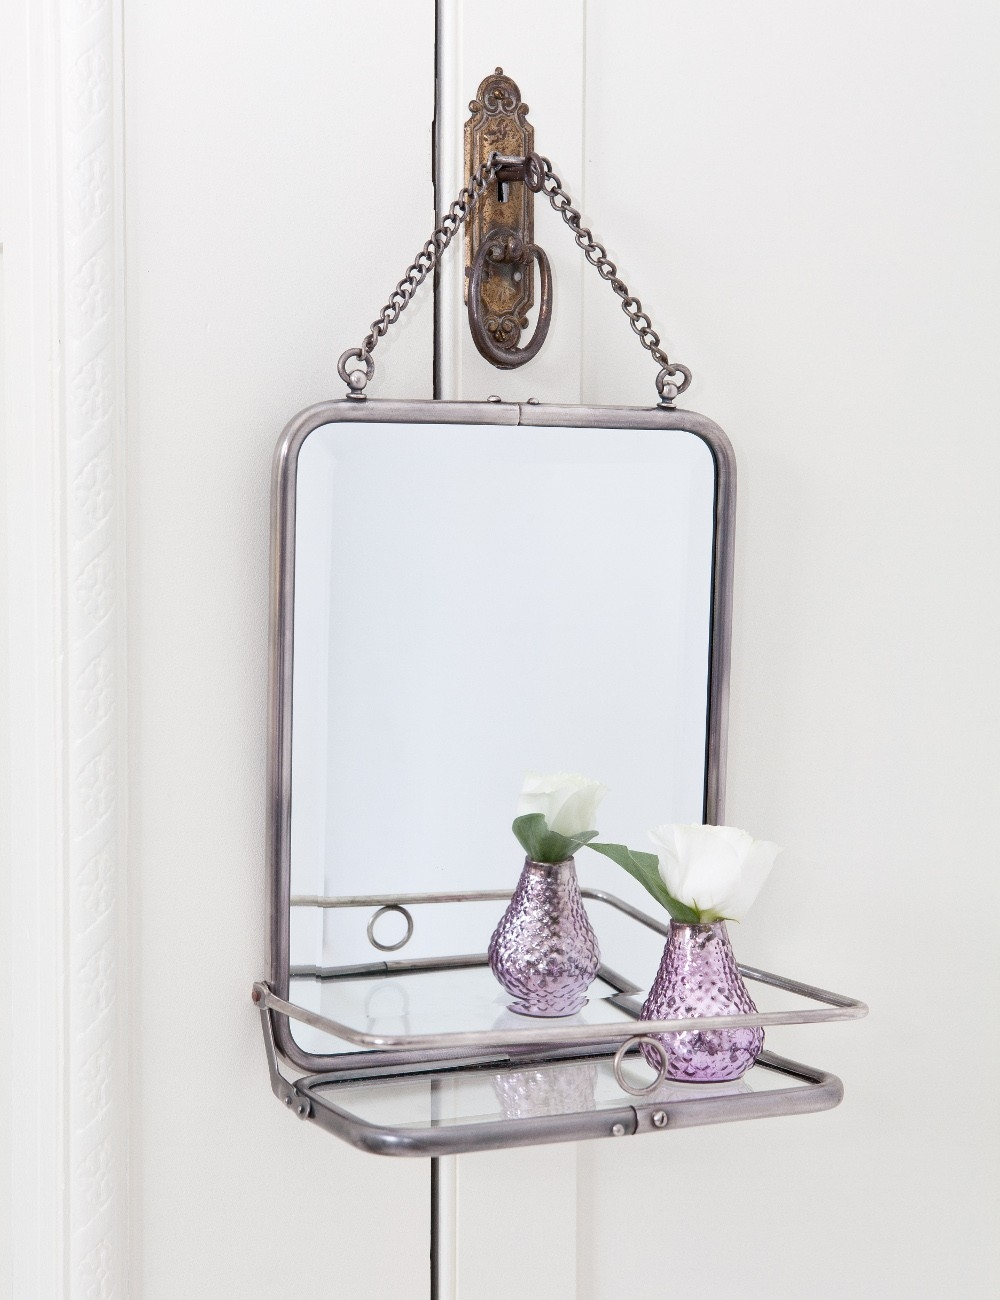 Bathroom French Bathroom Mirror Pictures Decorations Inspiration With Regard To French Style Bathroom Mirror (View 5 of 15)